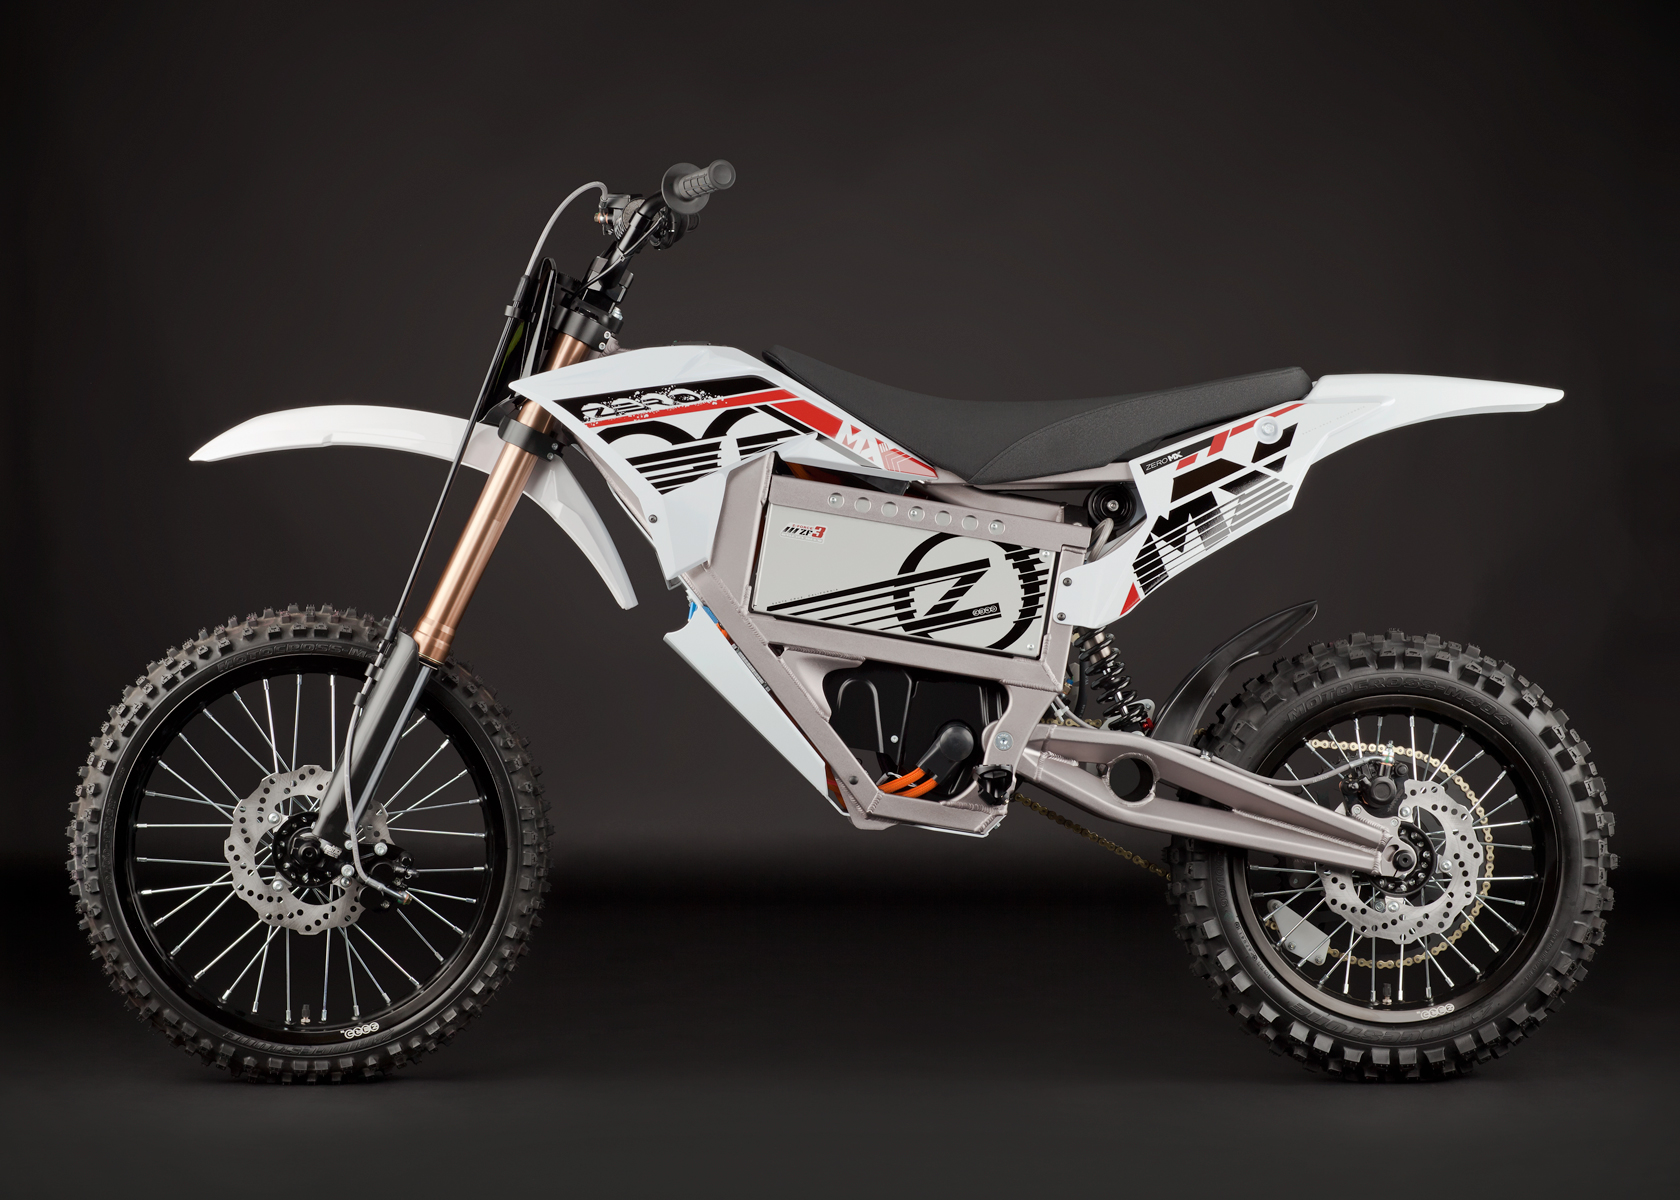 2012 Zero MX Electric Motorcycle: Profile Left